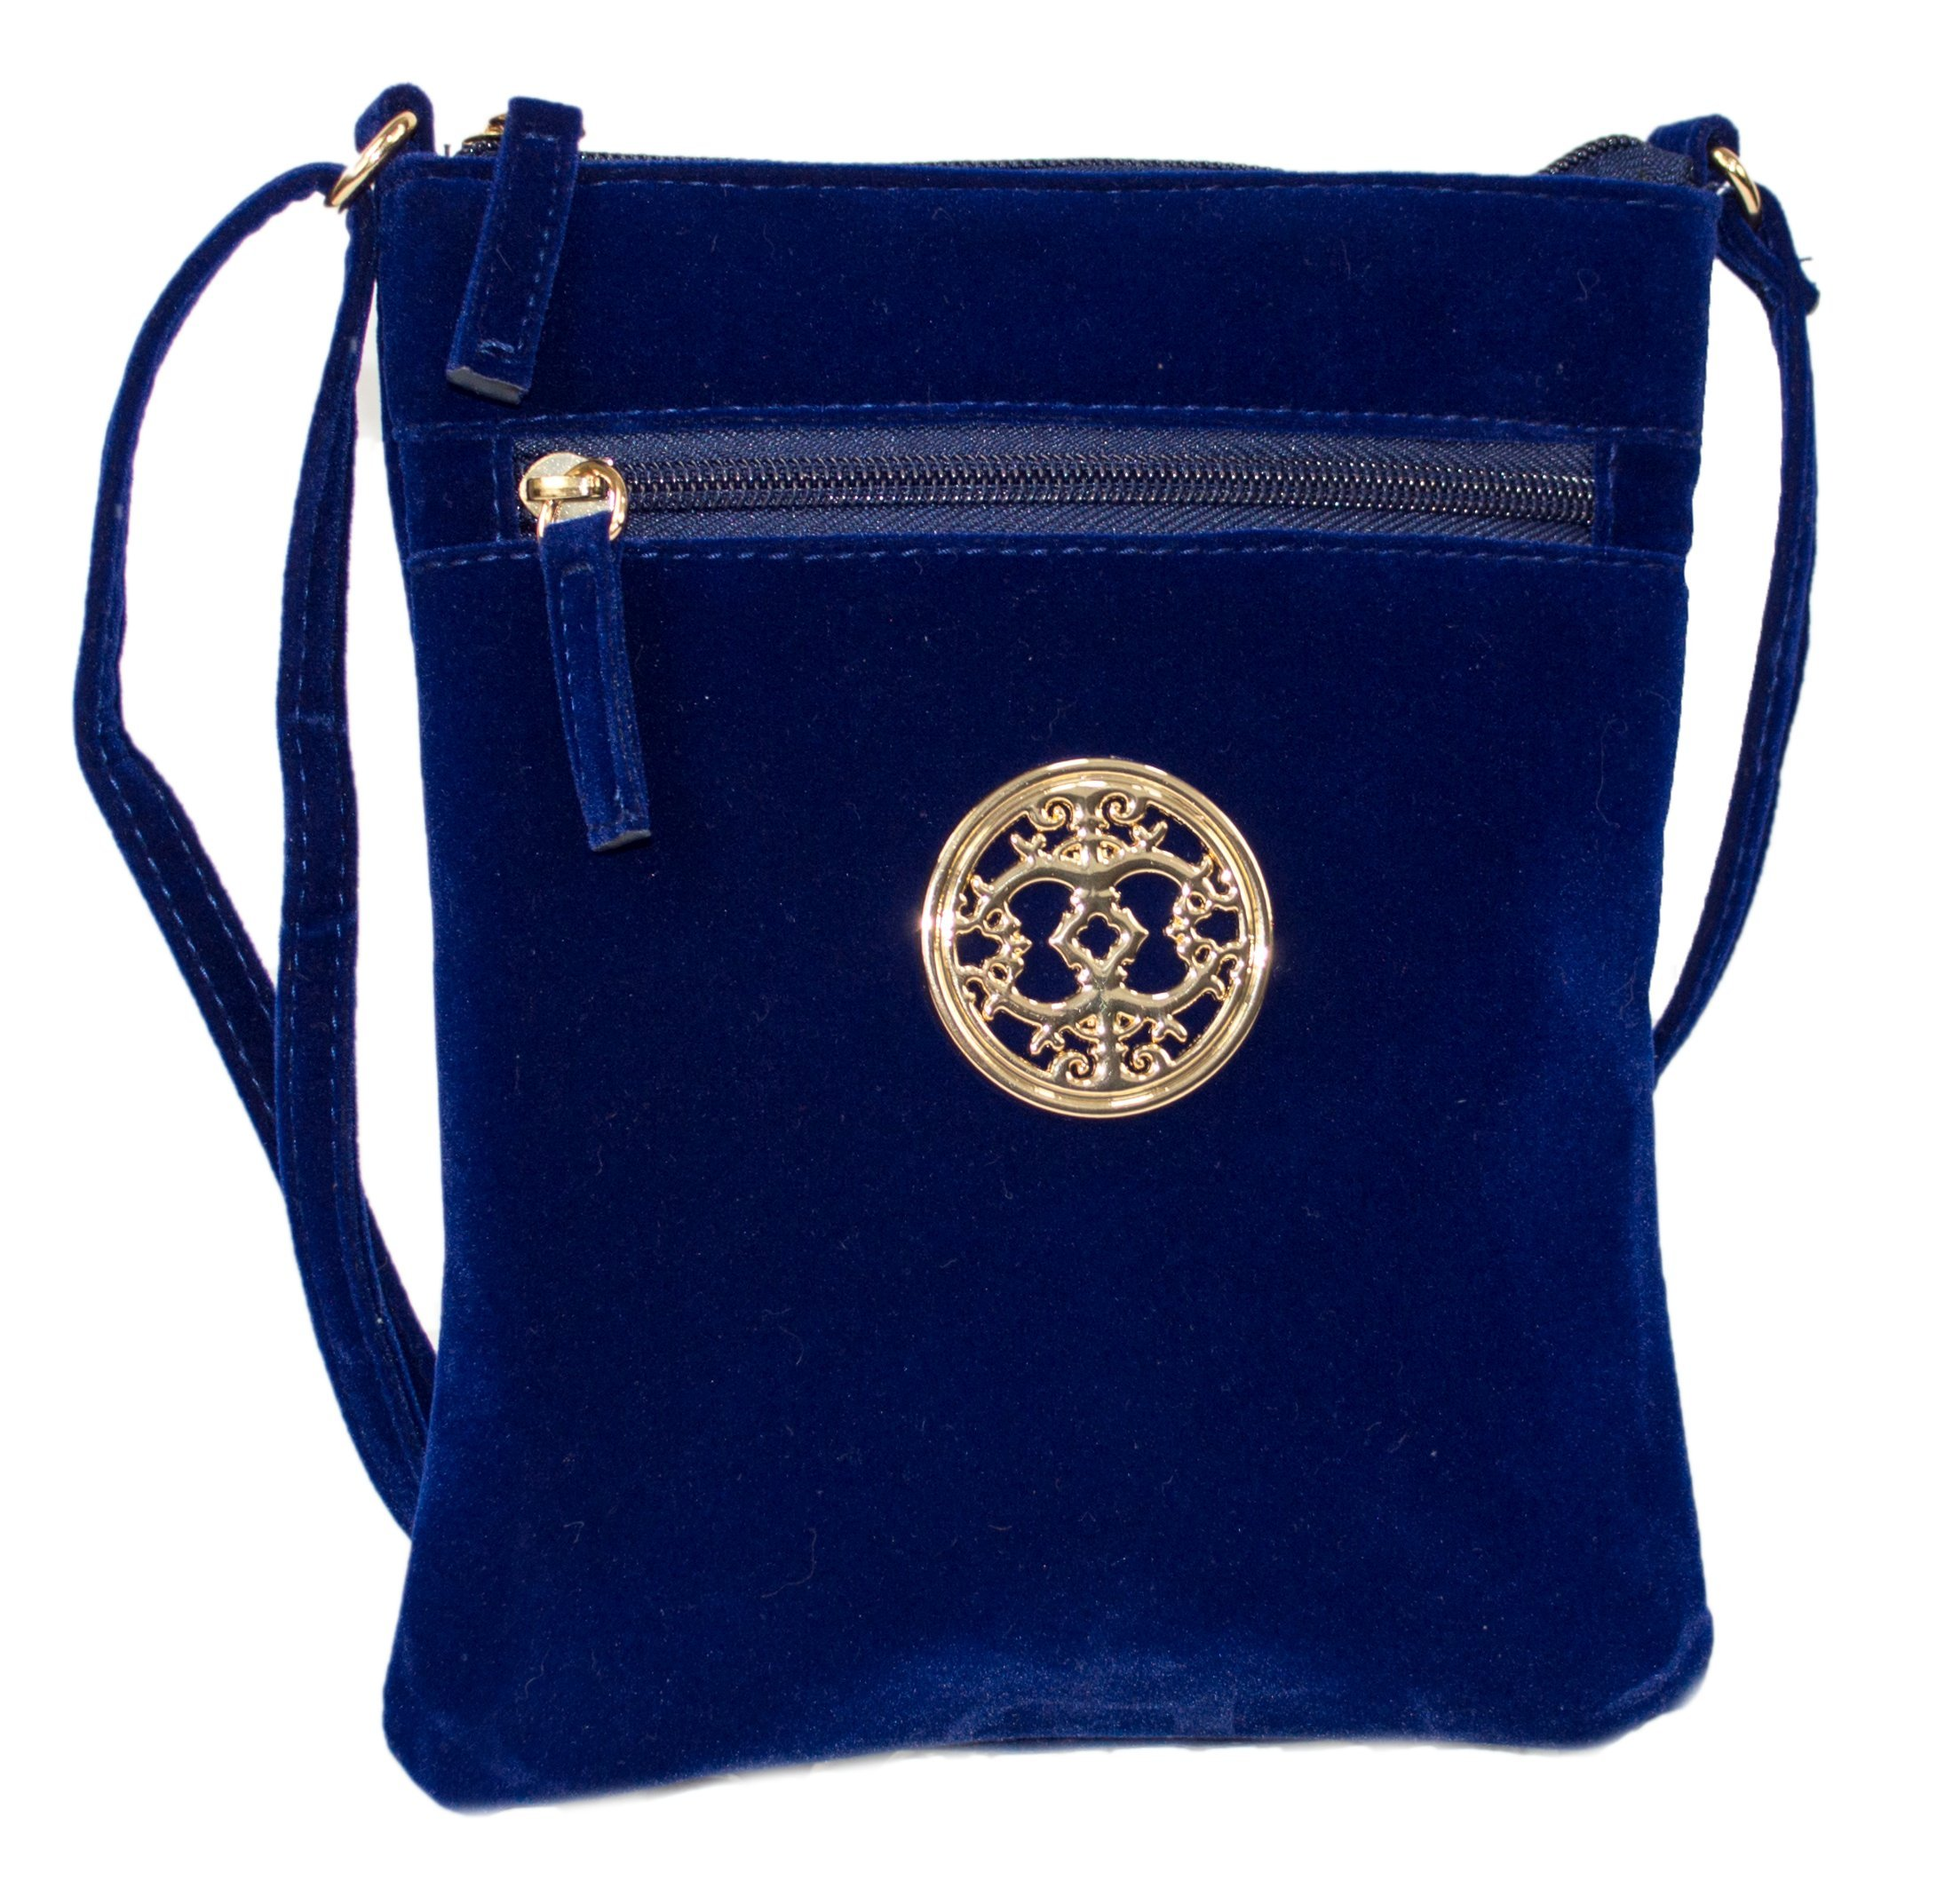 Rising Phoenix Industries Navy Blue Vintage Style Velvet Crossbody Party Bag, Small Purse with Shoulder Strap